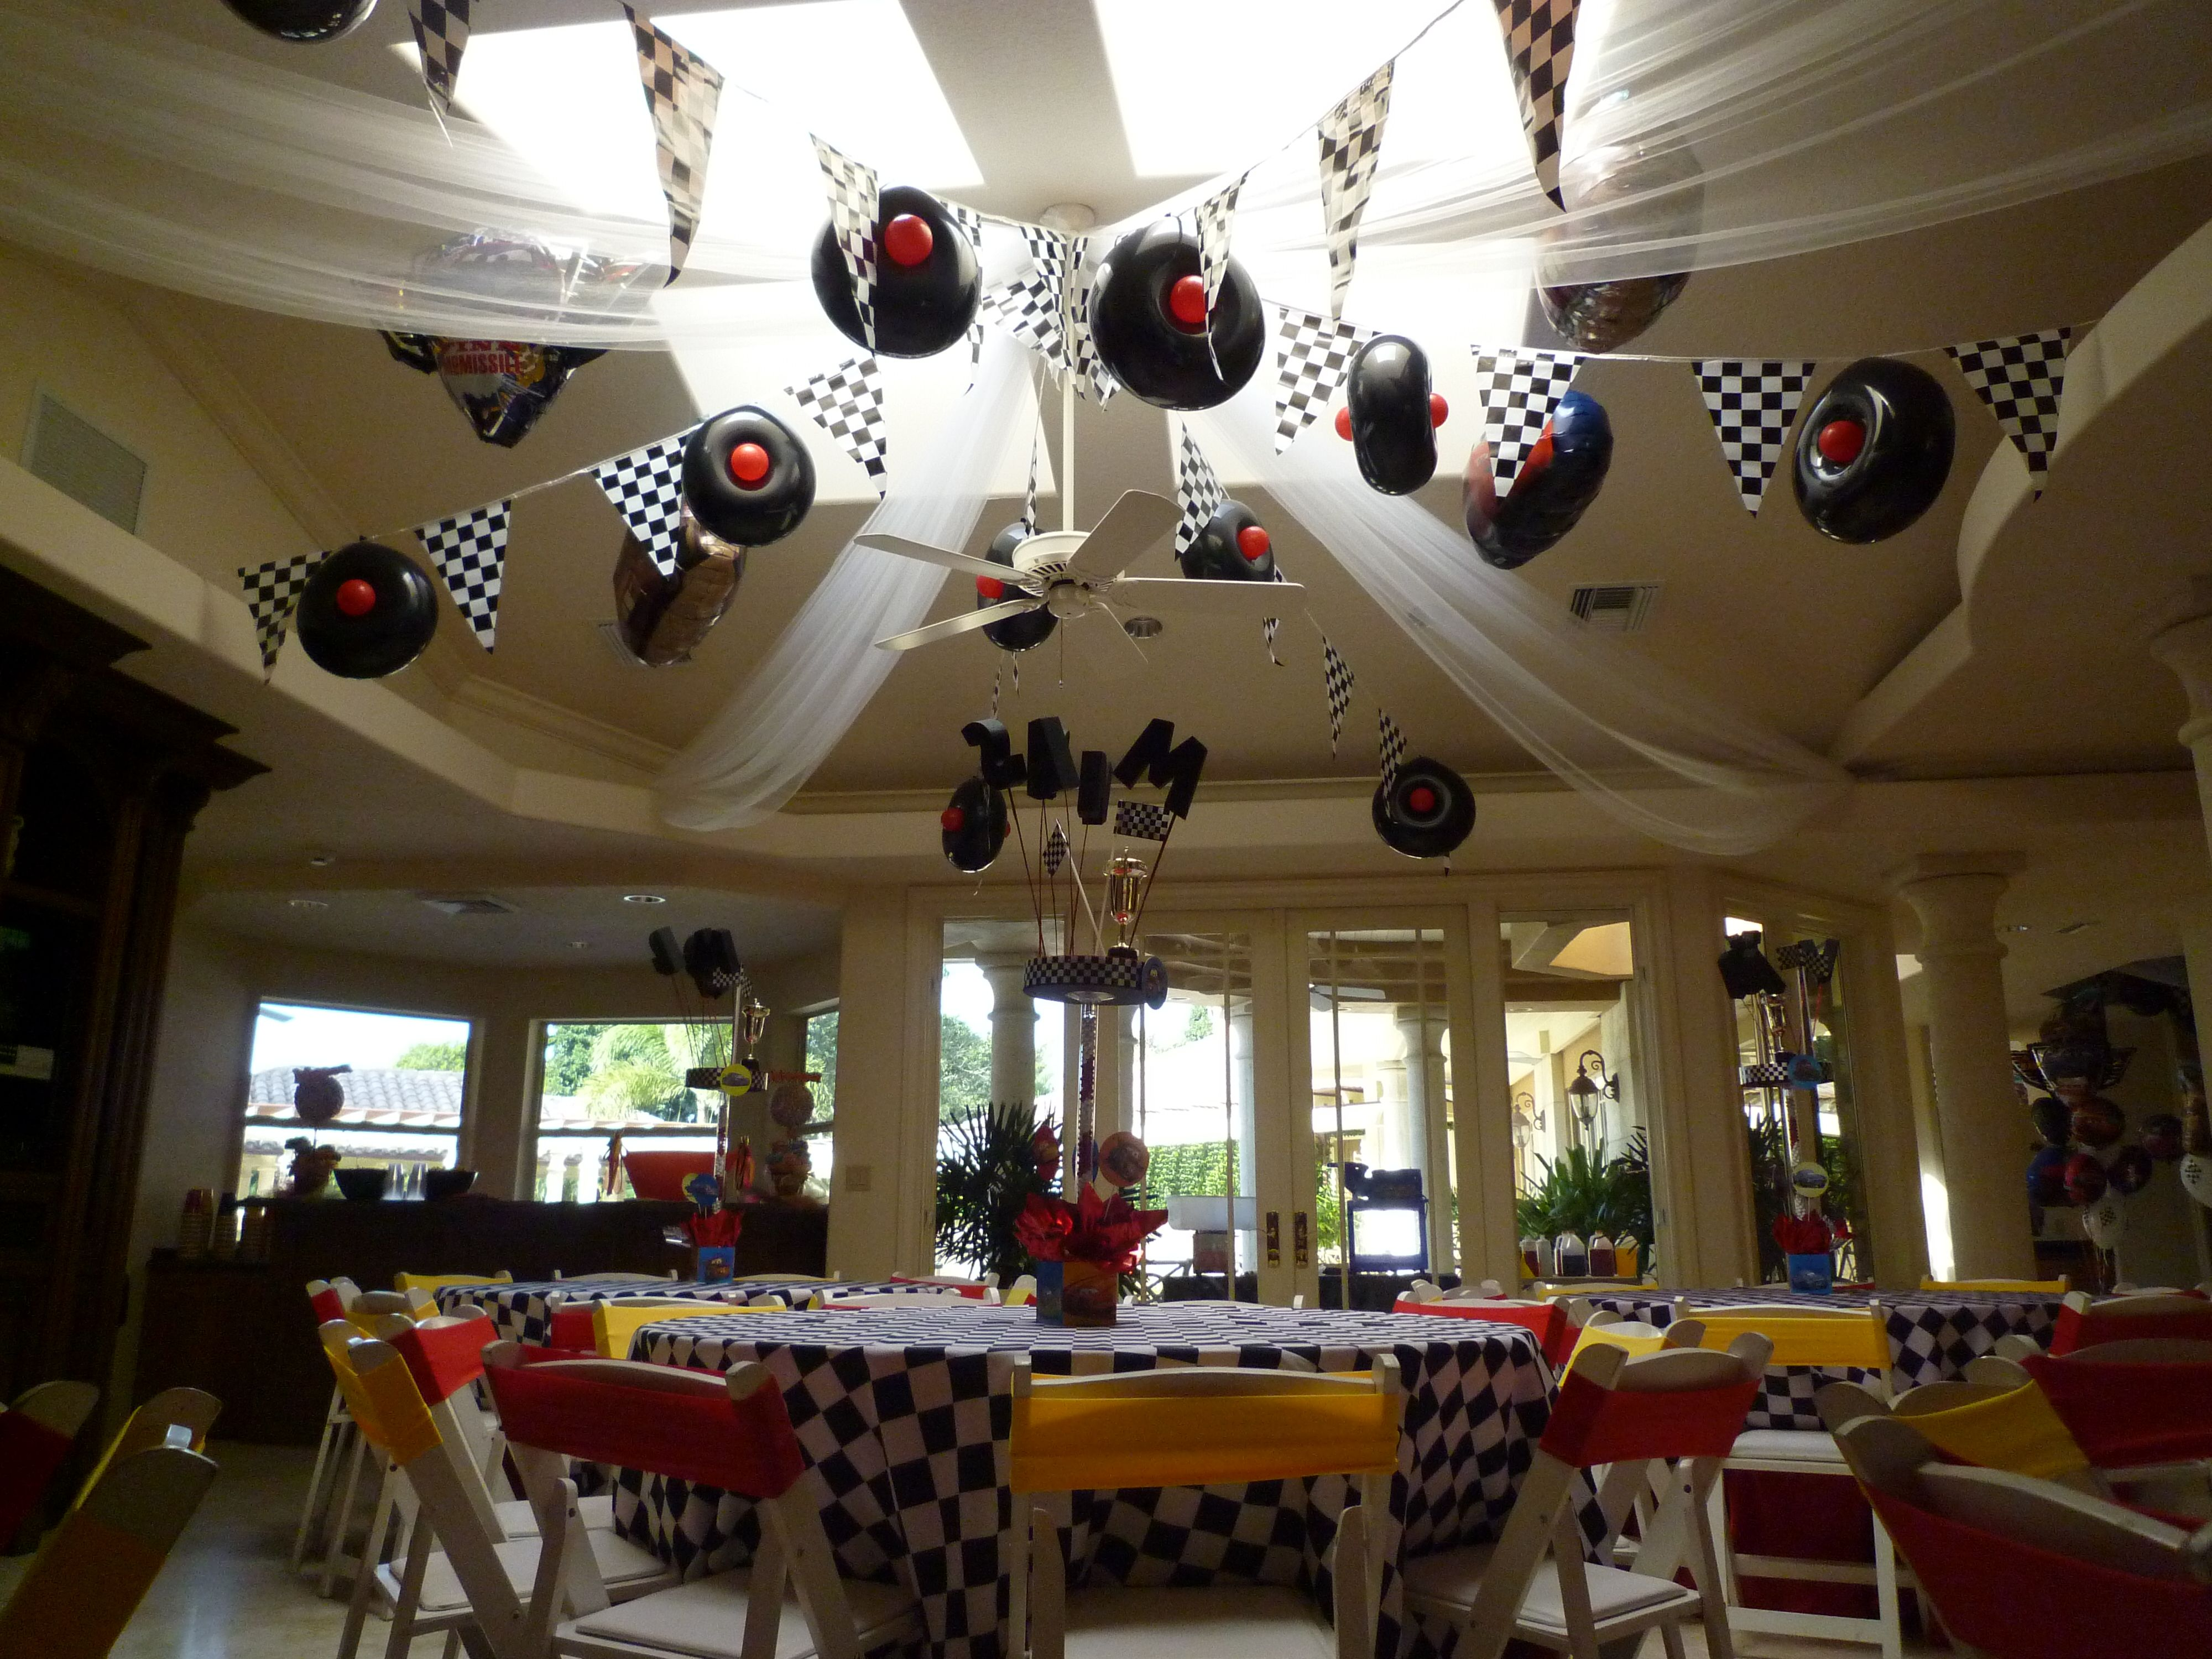 Kids Party Ceiling Decoration With Sport Theme Party Decoration Idea